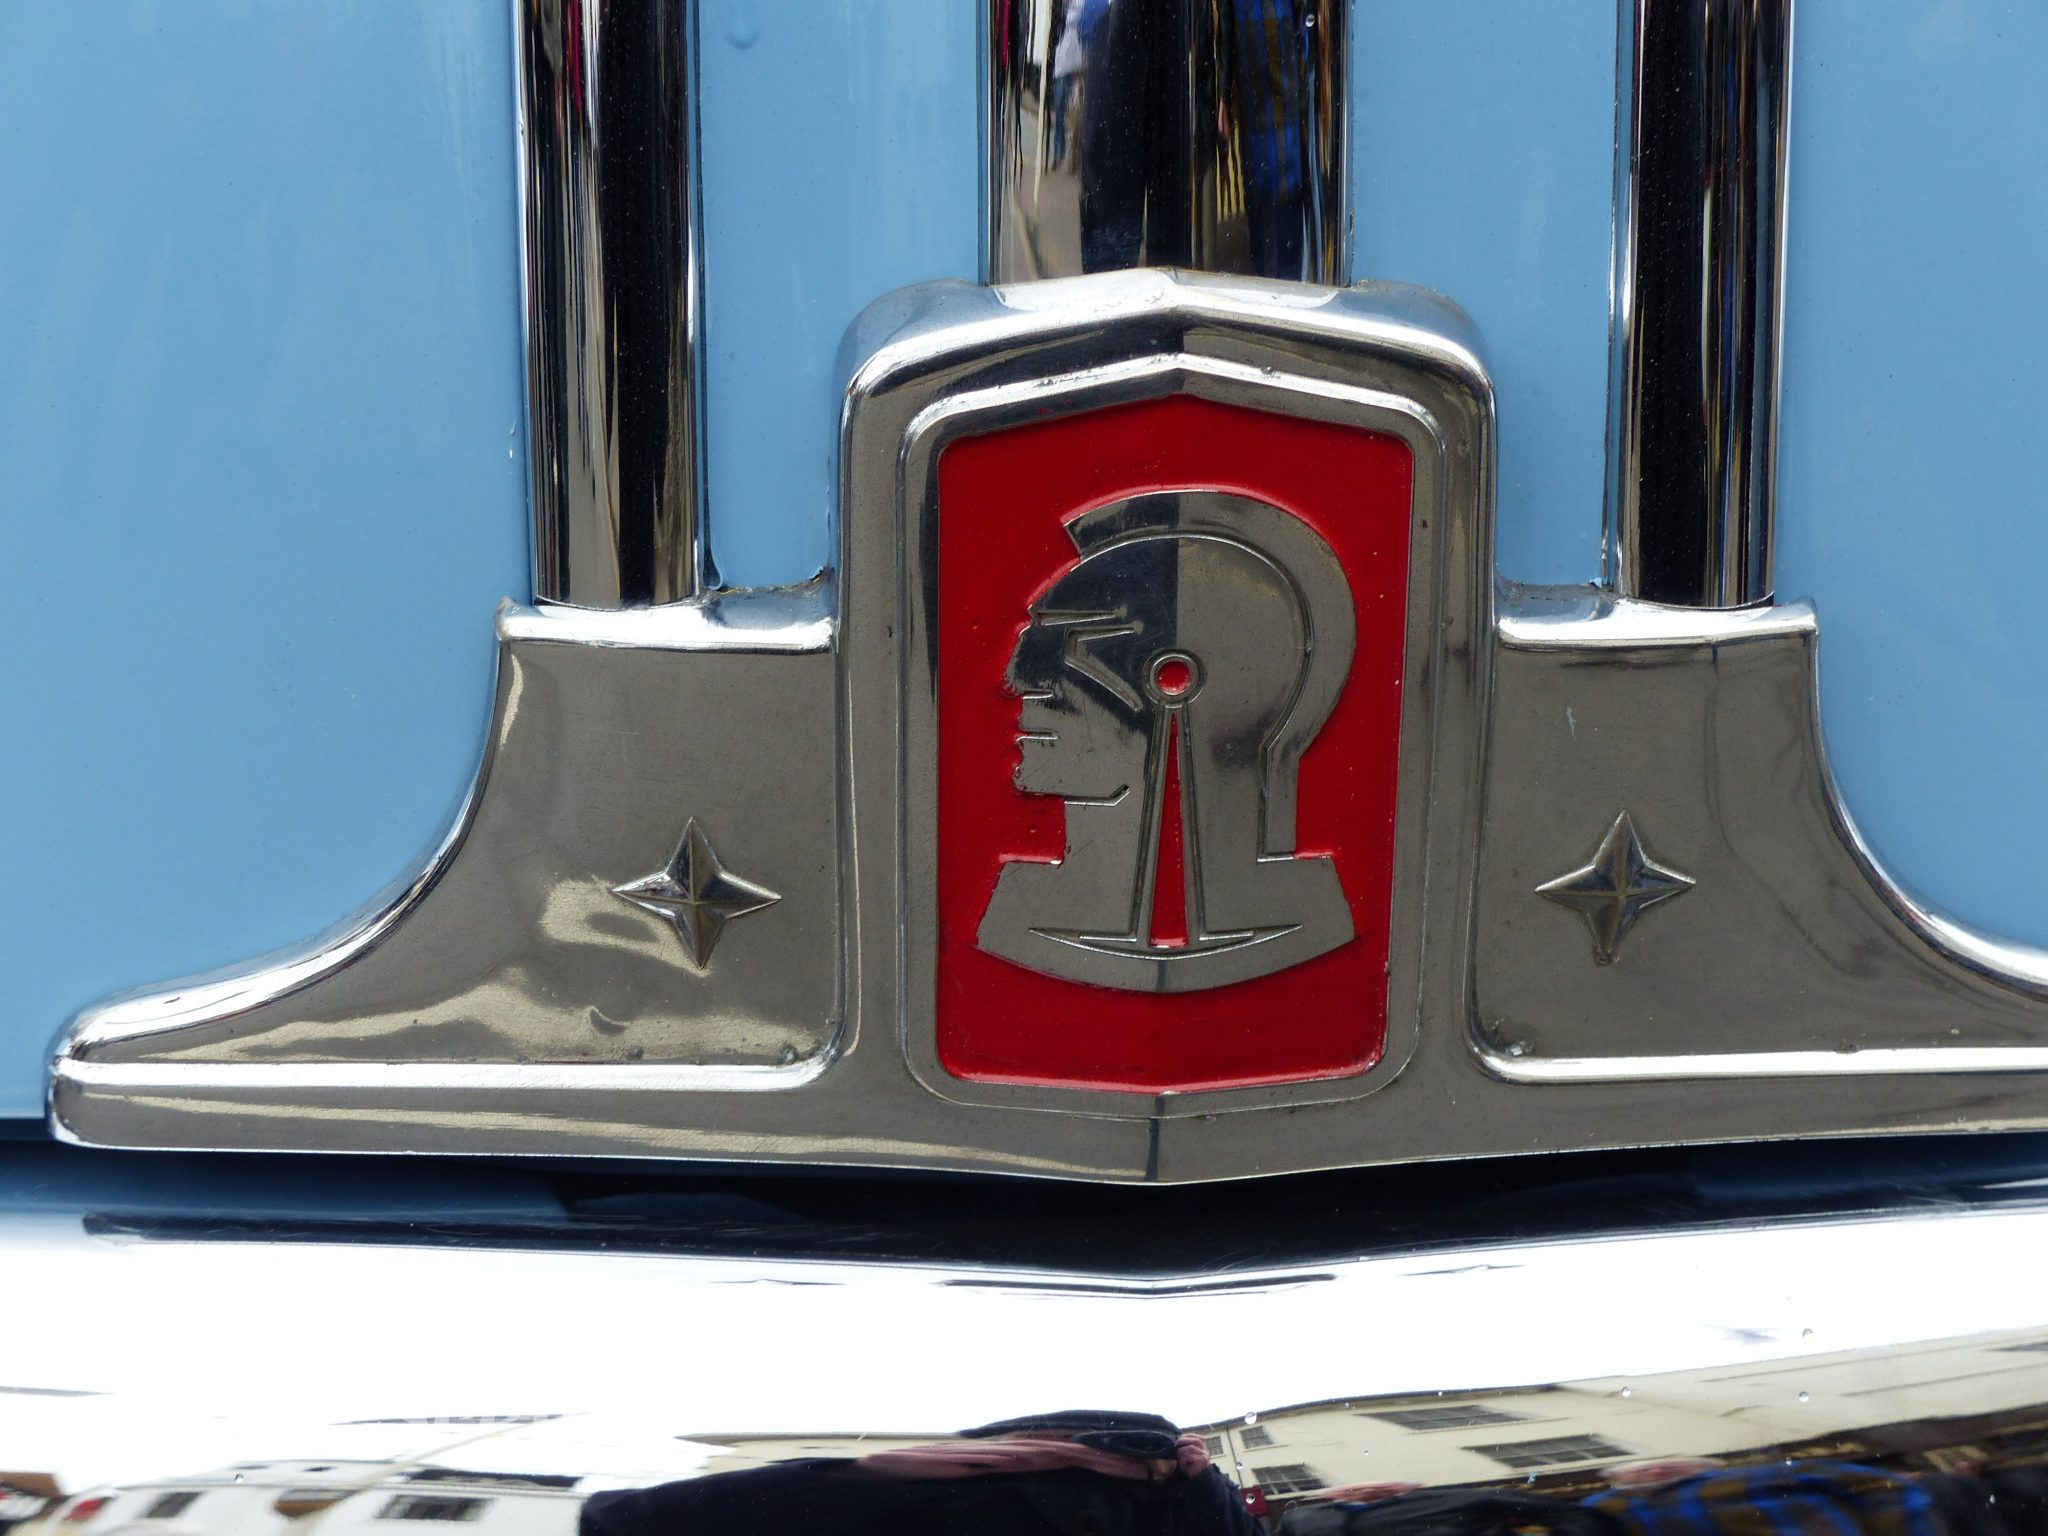 1948 Pontiac front hood badge